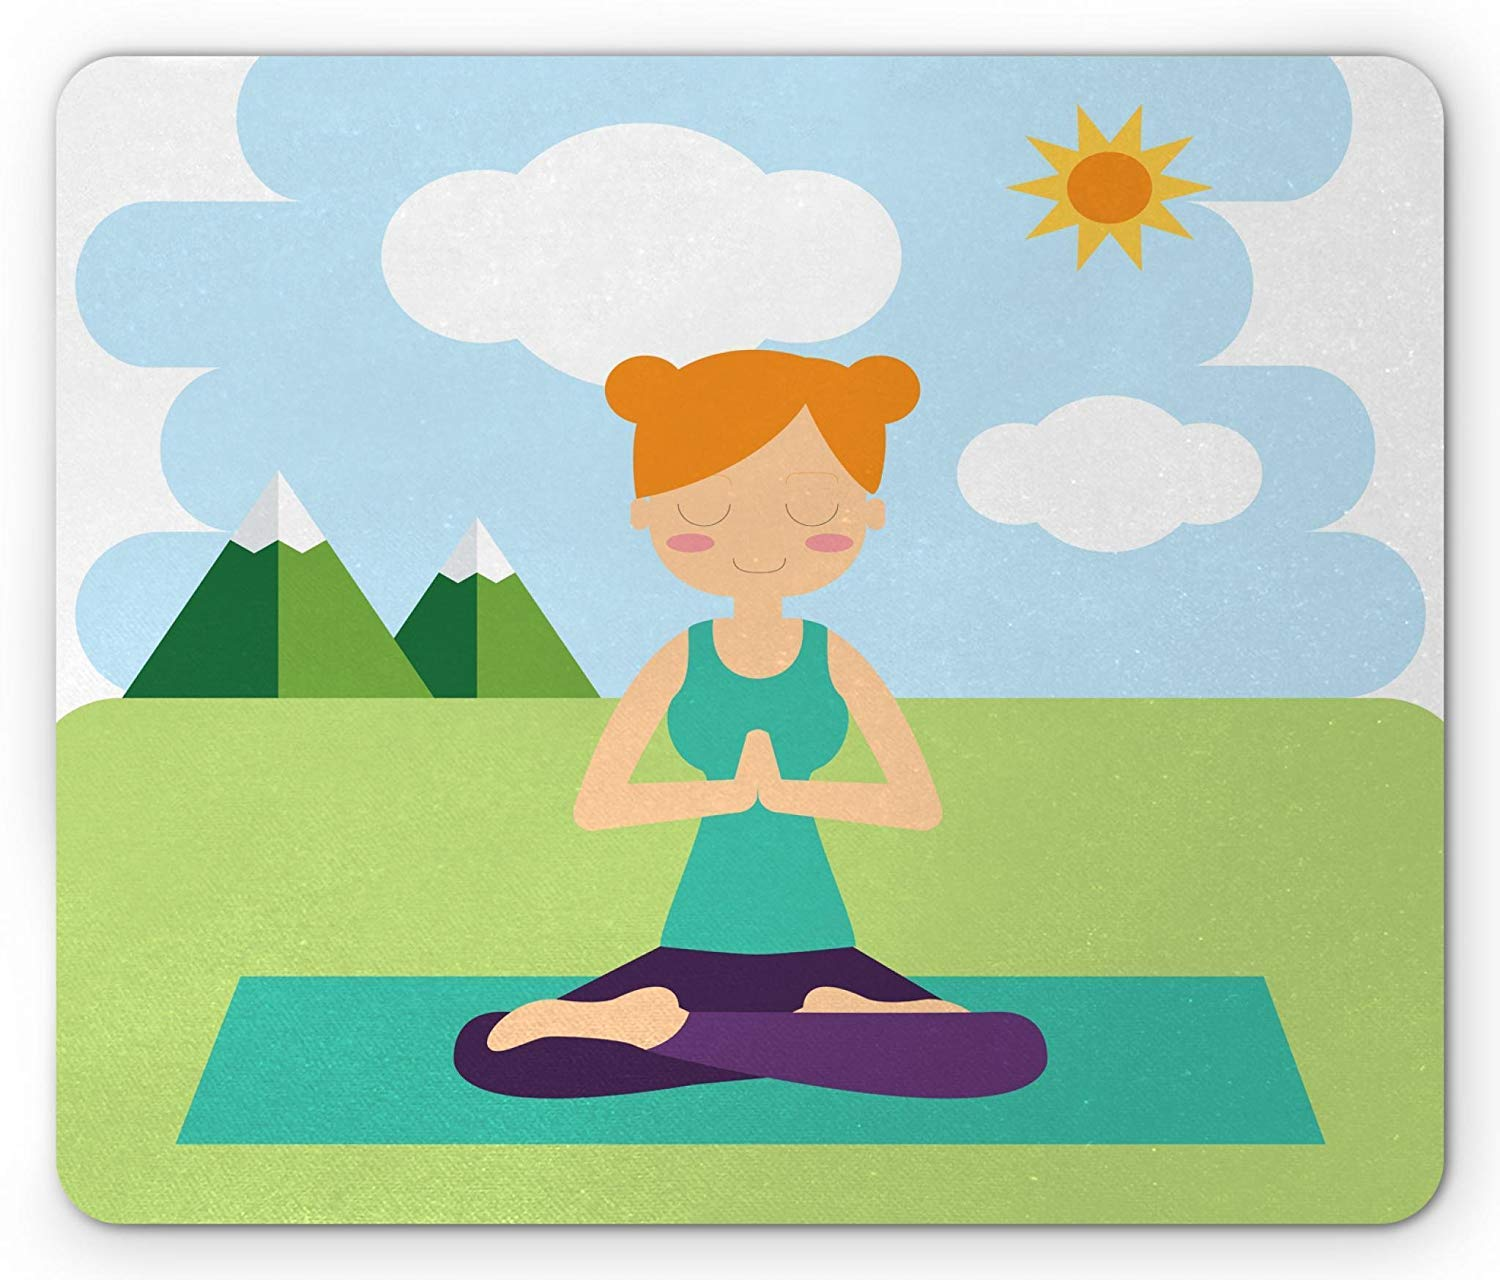 Amazon.com : Yoga Mouse Pad, Flat Design Girl in Lotus Pose ...